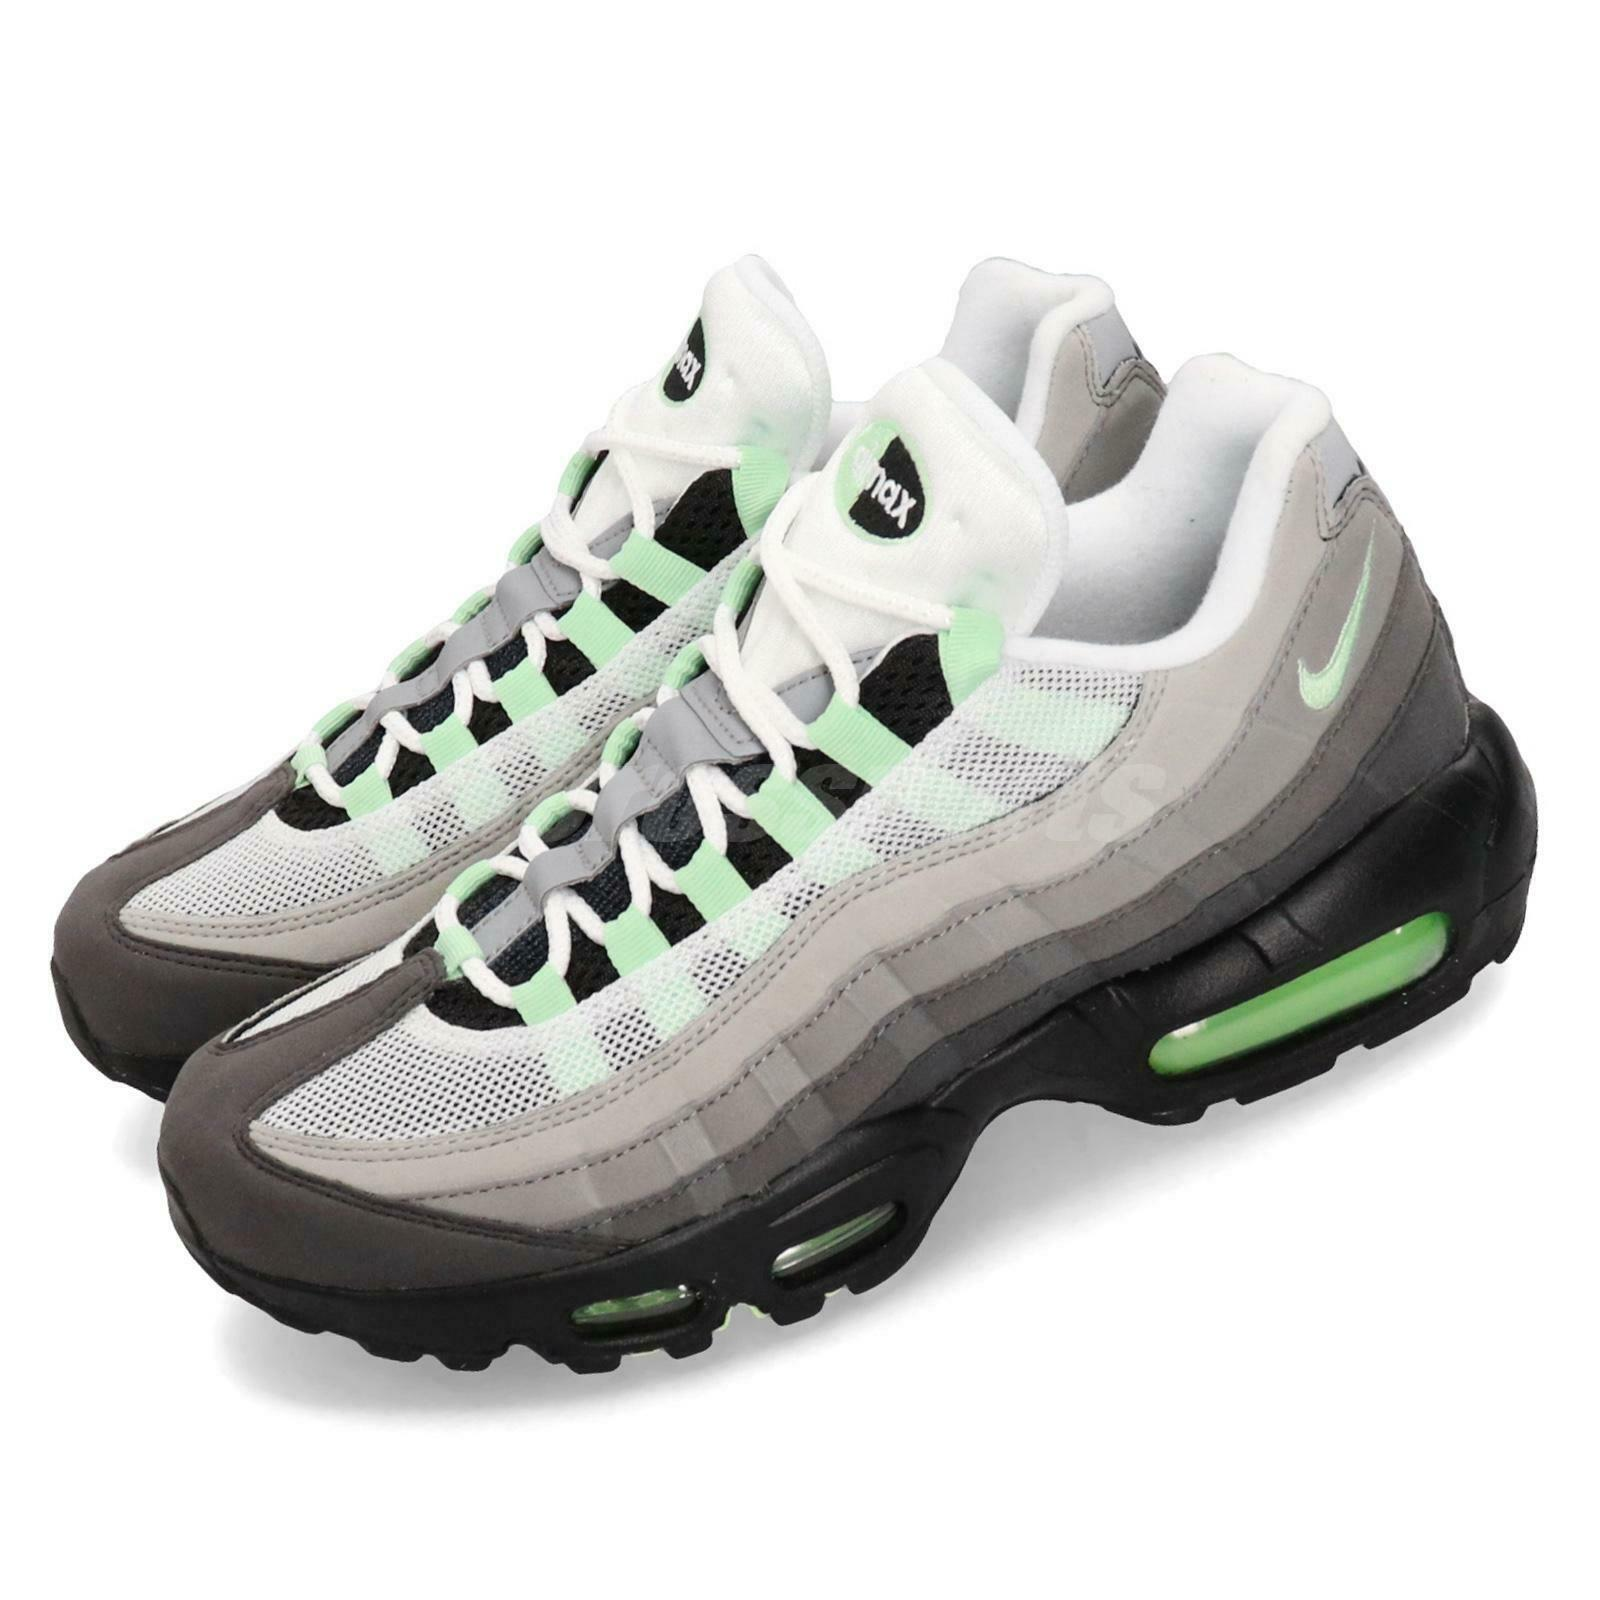 Details about Nike air max 95 premium grey trainers size 12 100% authentic designer sneakers